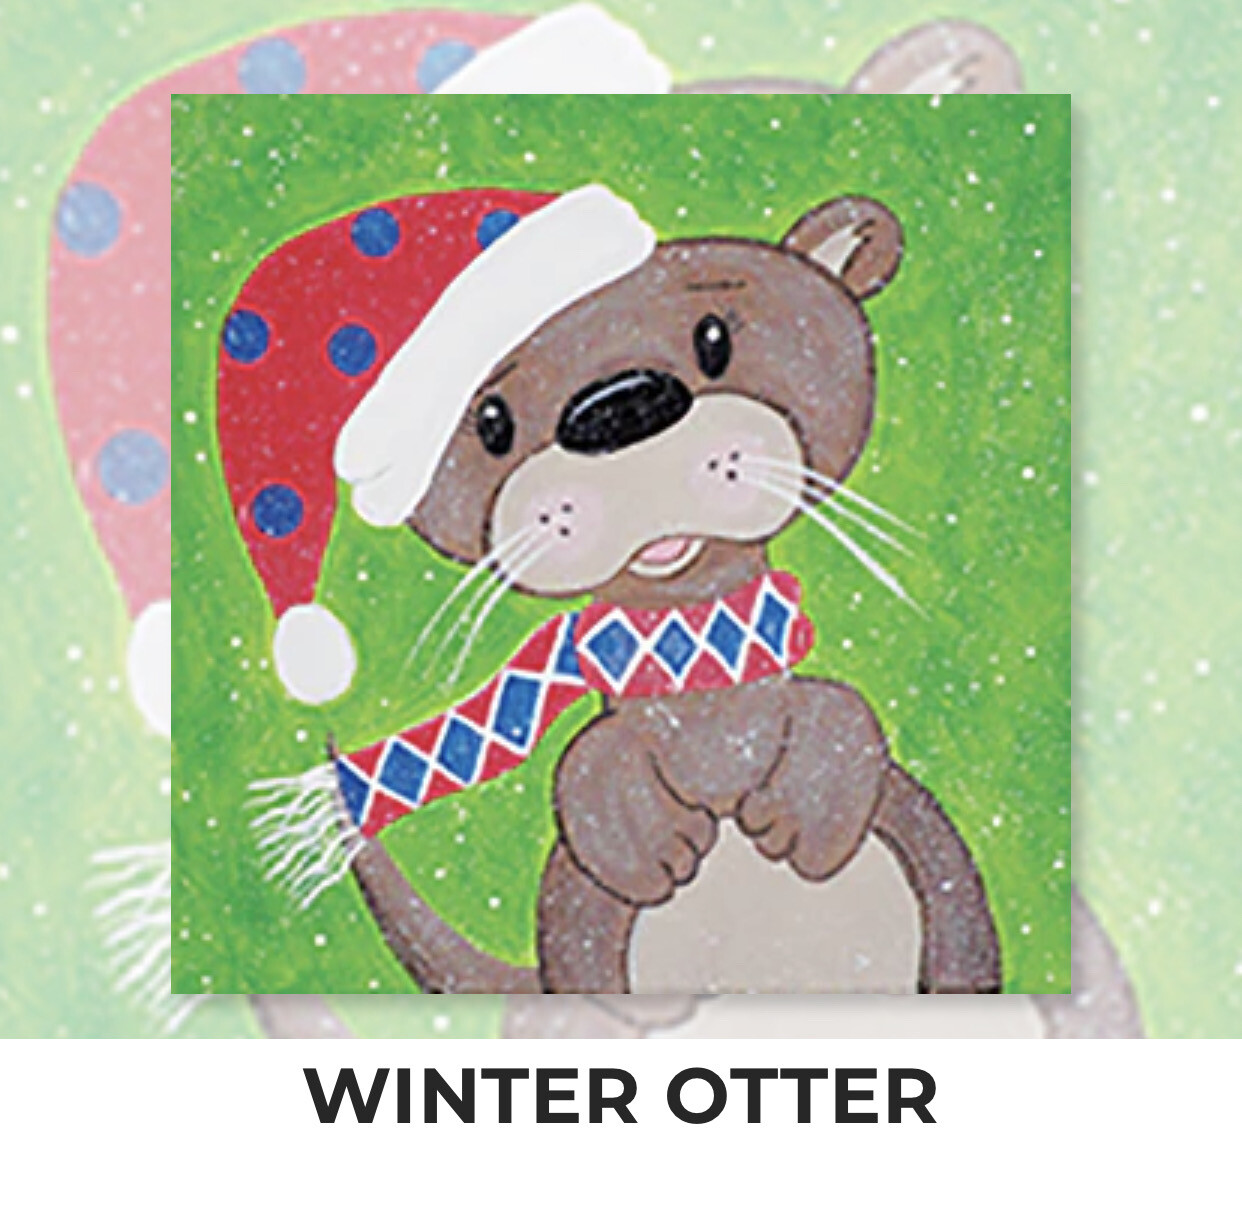 Winter Otter KIDS Acrylic Paint On Canvas DIY Art Kit - 3 Week Special Order